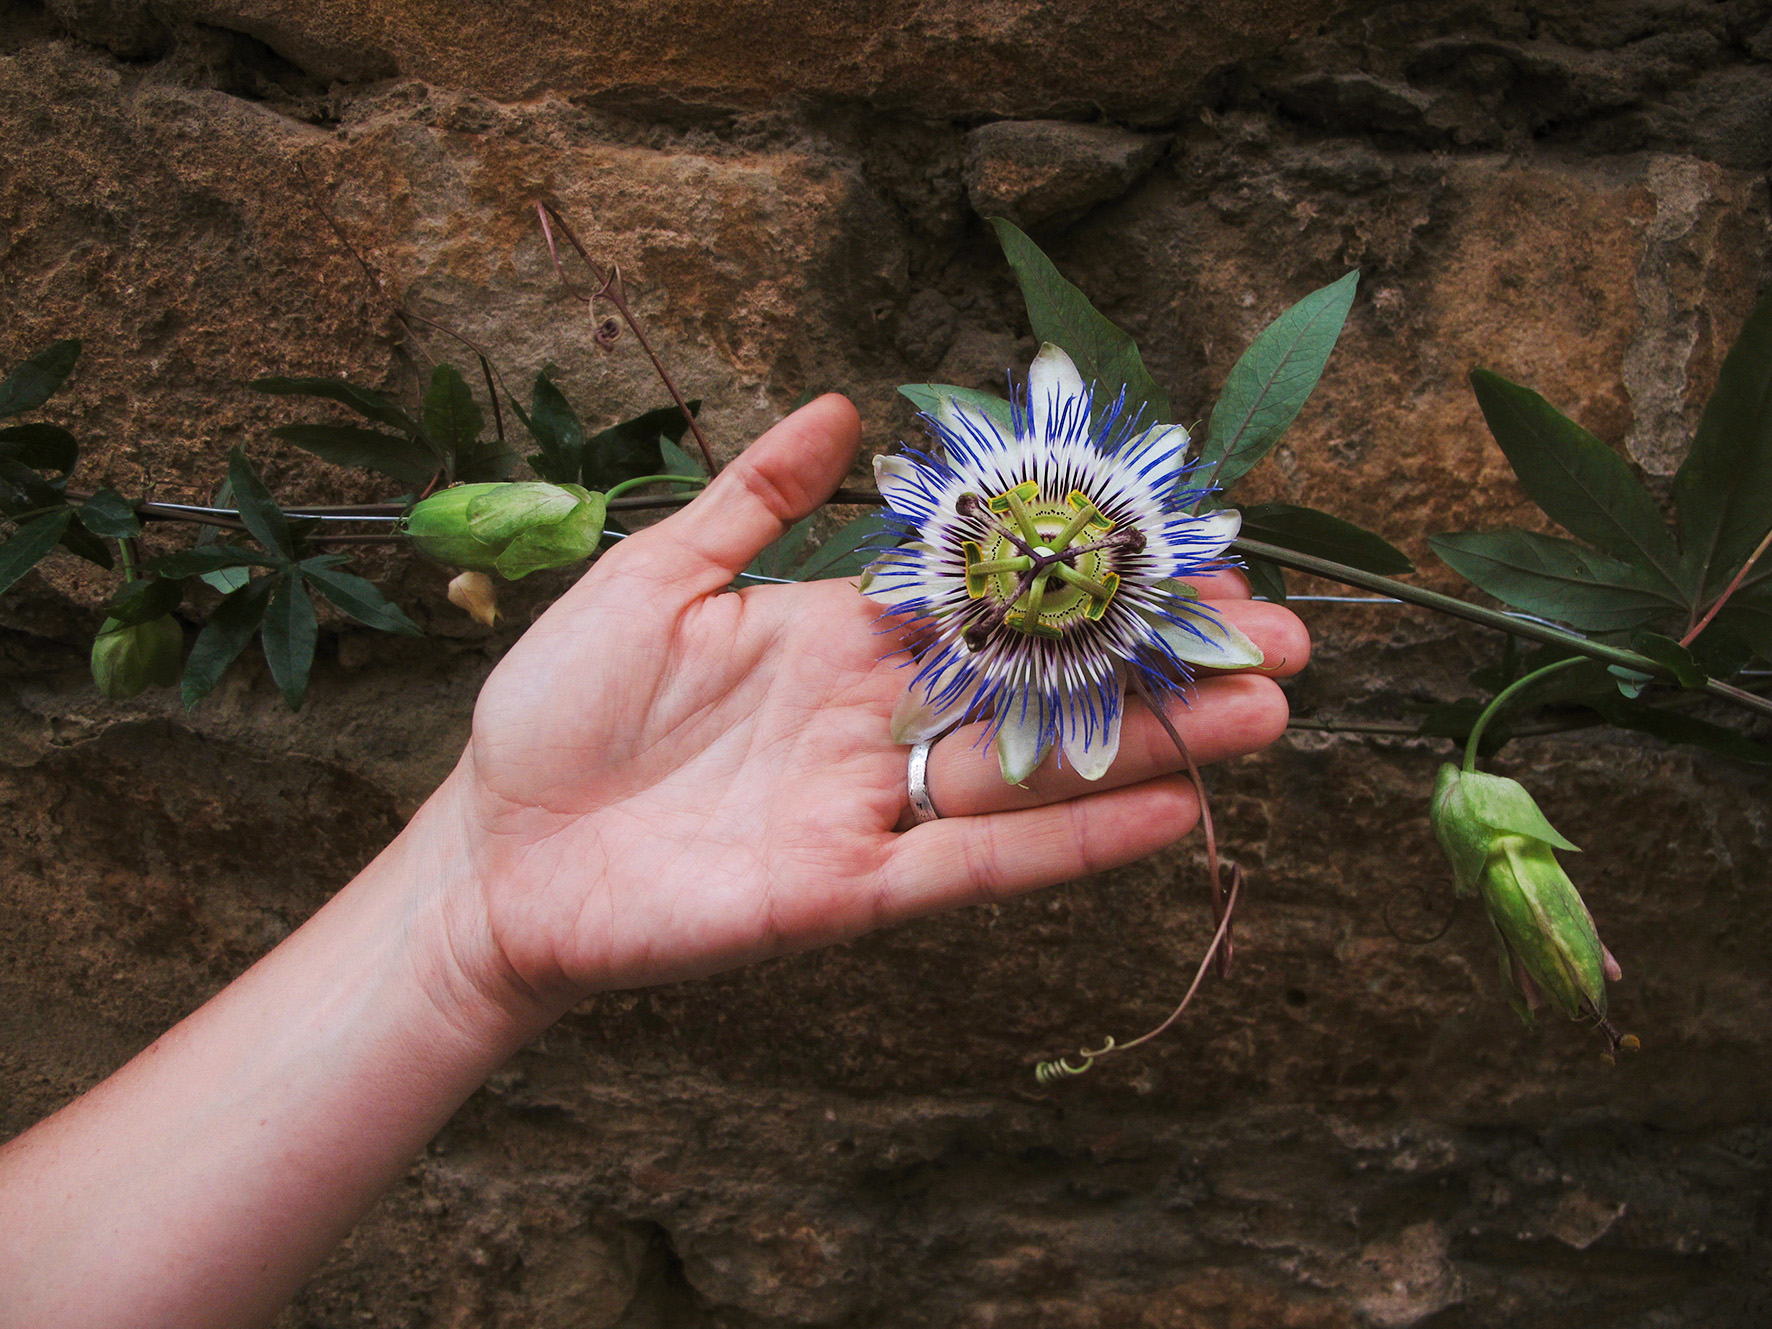 Passion flower is a superb healing plant that works with the nervous system.